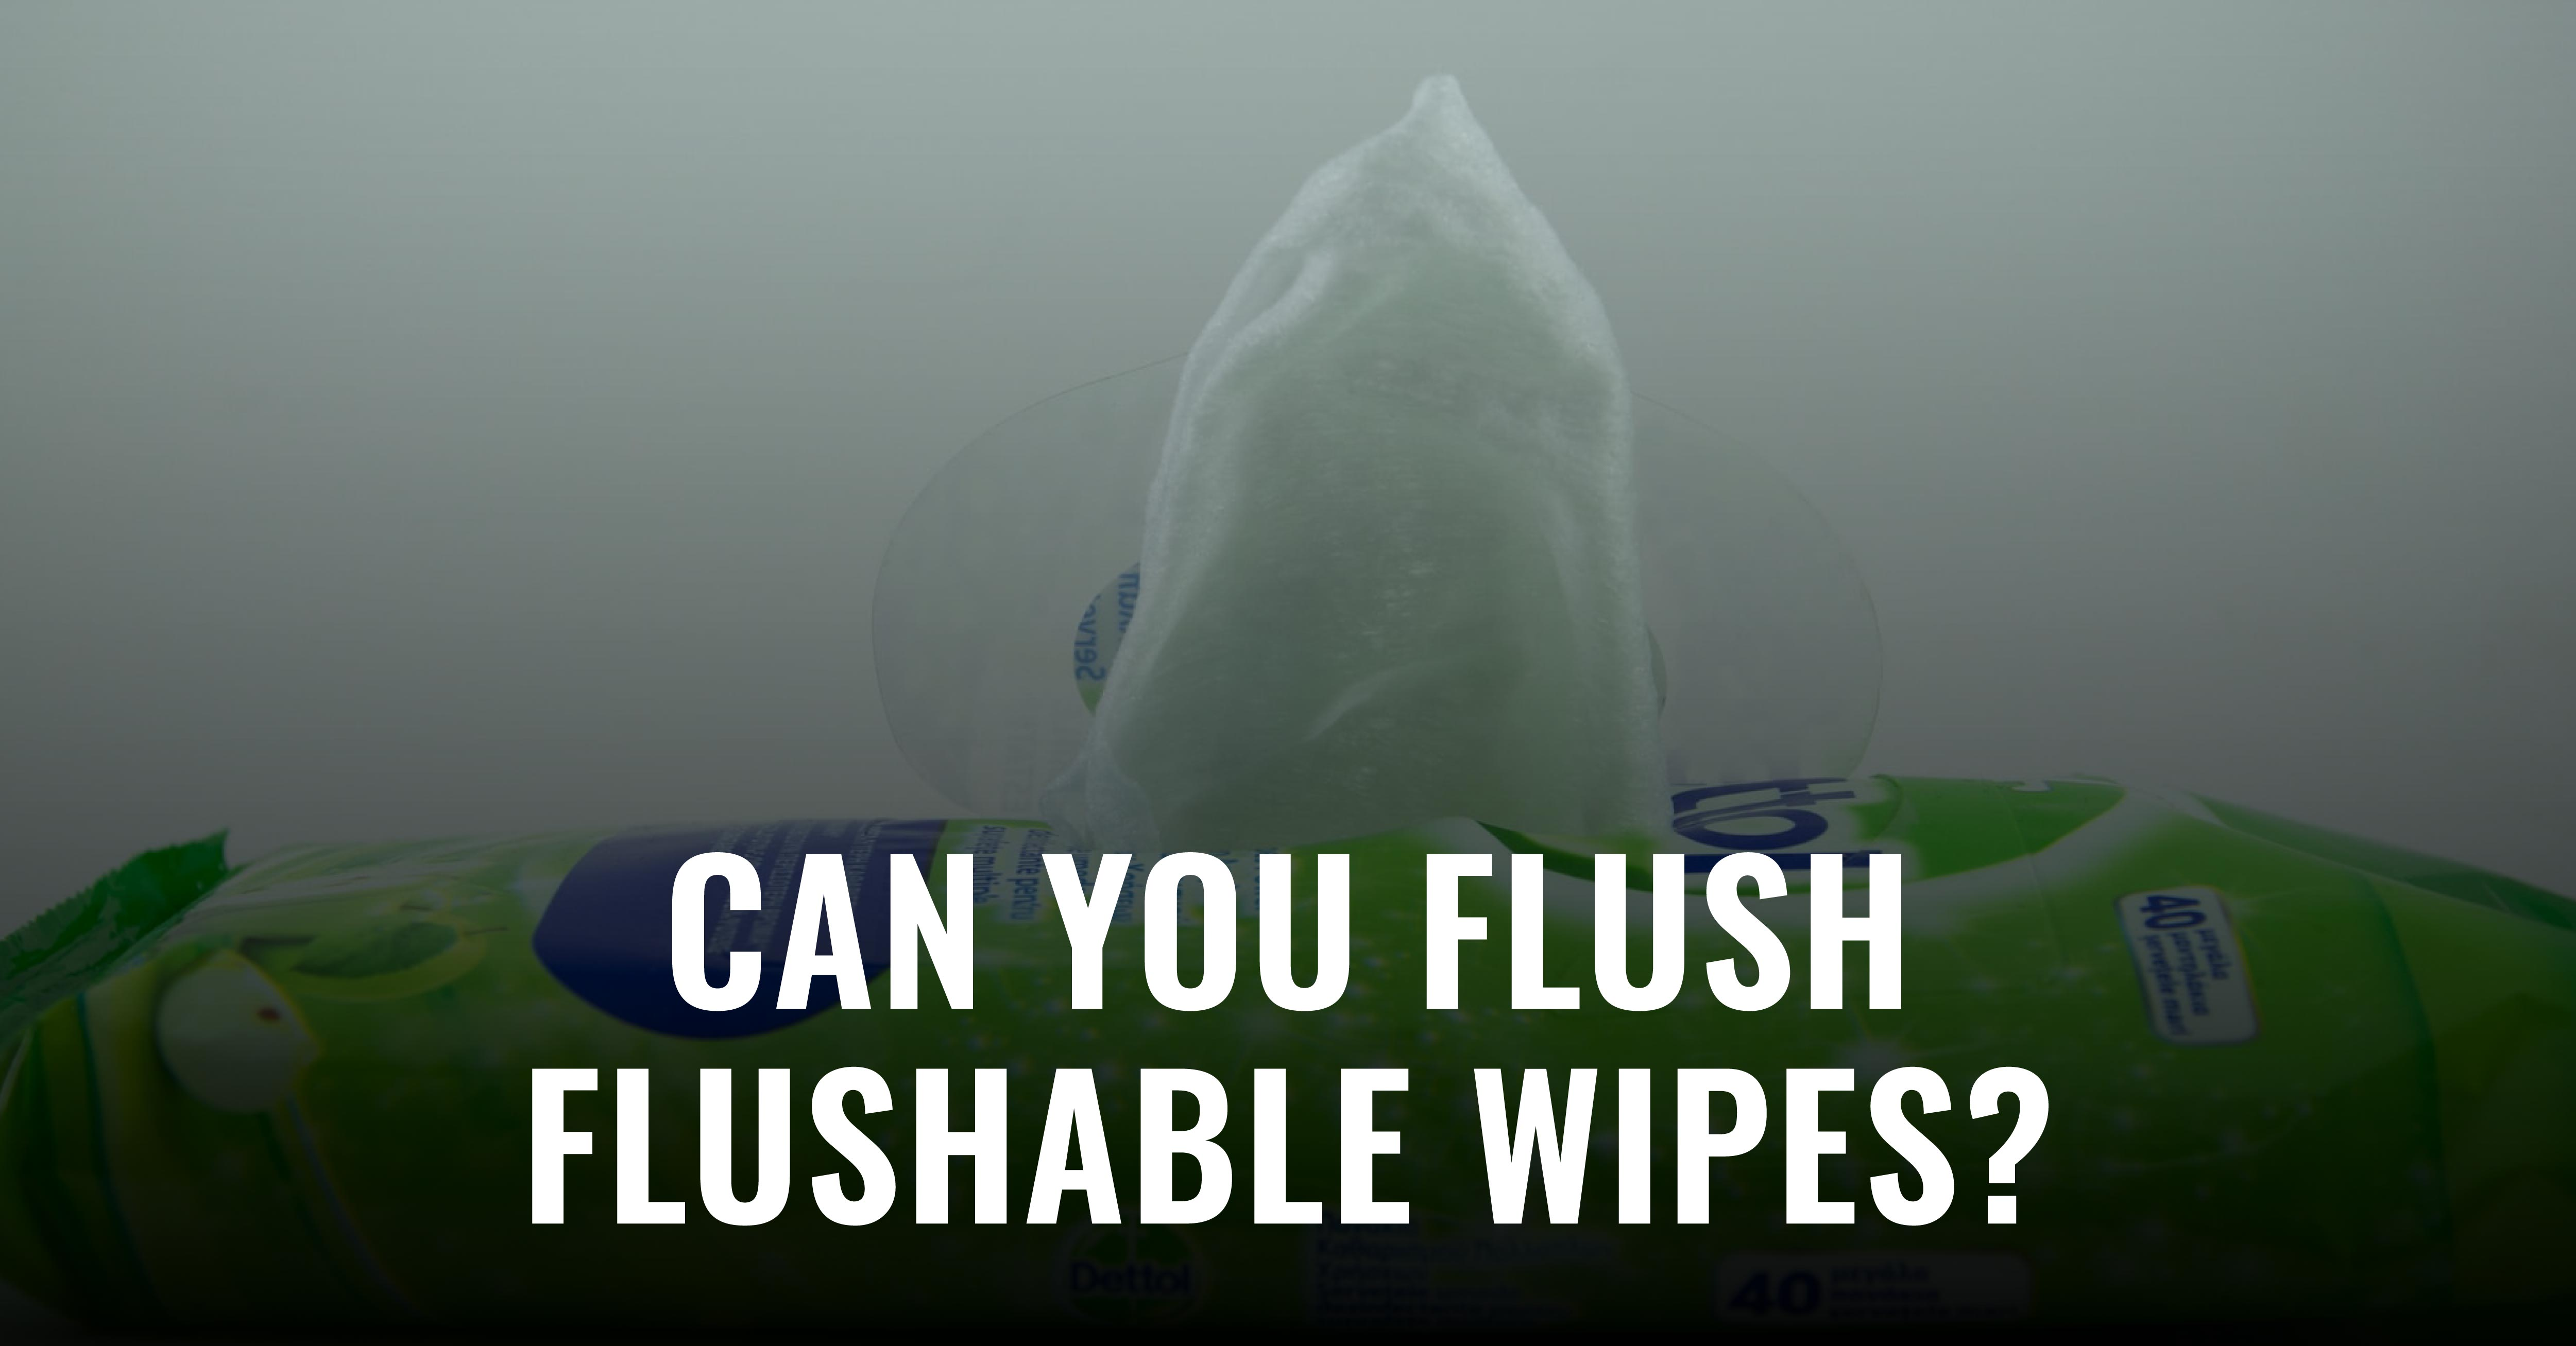 Are flushable wipes really okay for you to flush down your toilet? Well, the answer may surprise you...